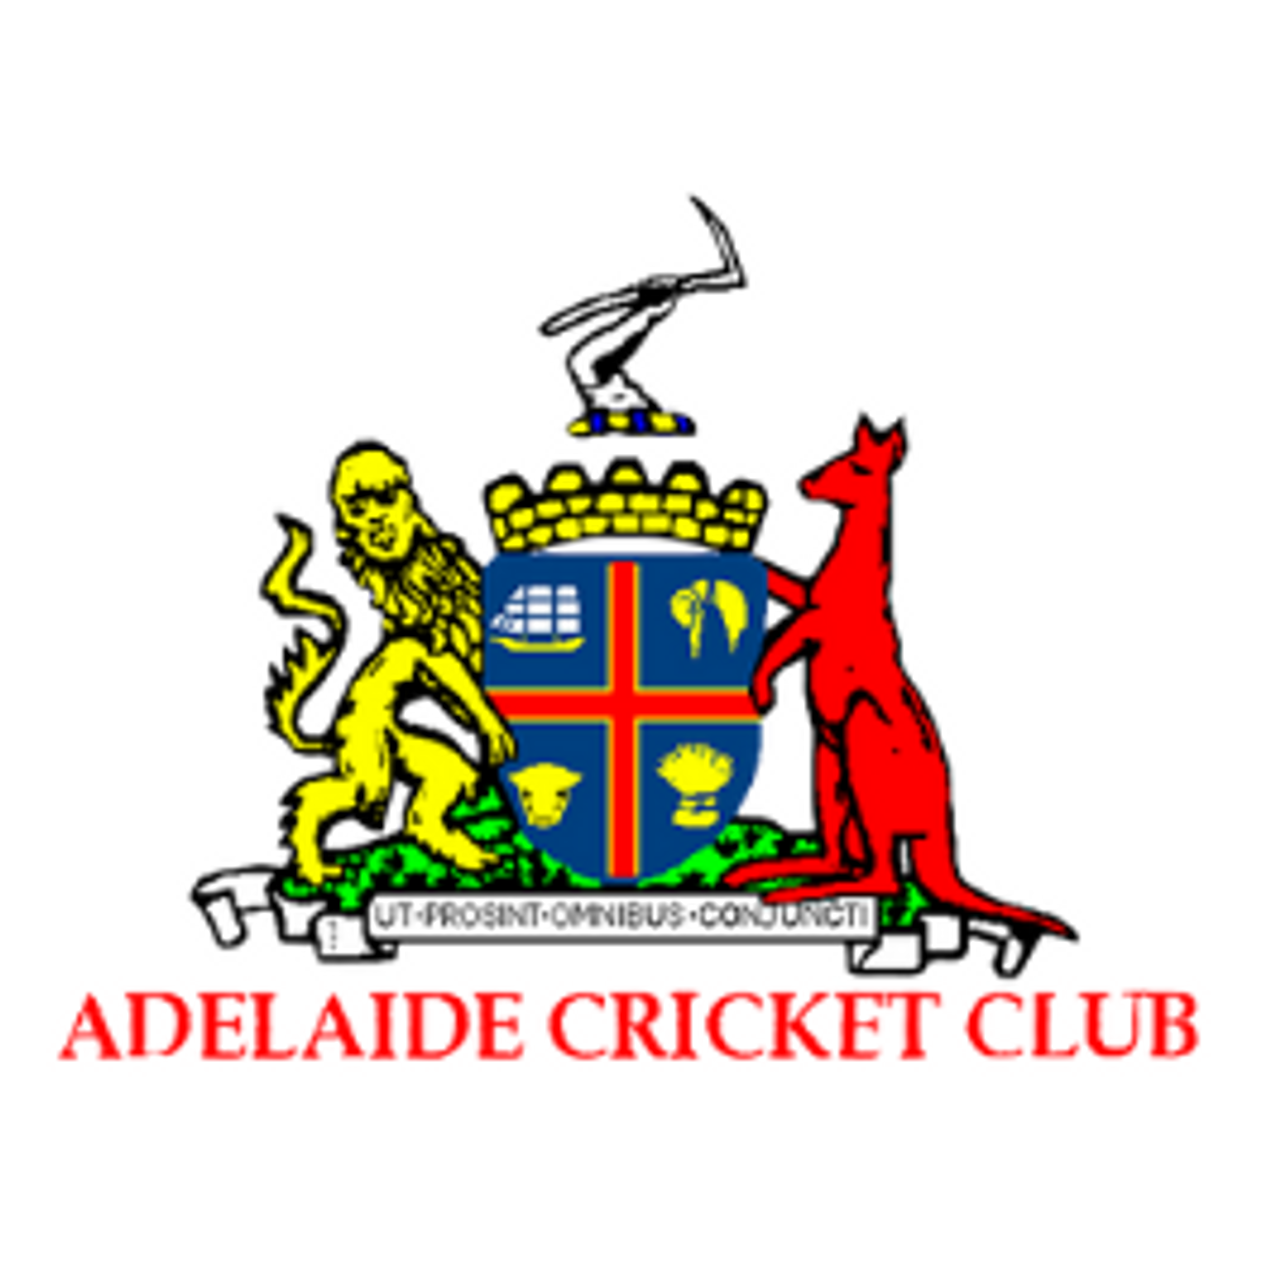 Adelaide Cricket Club